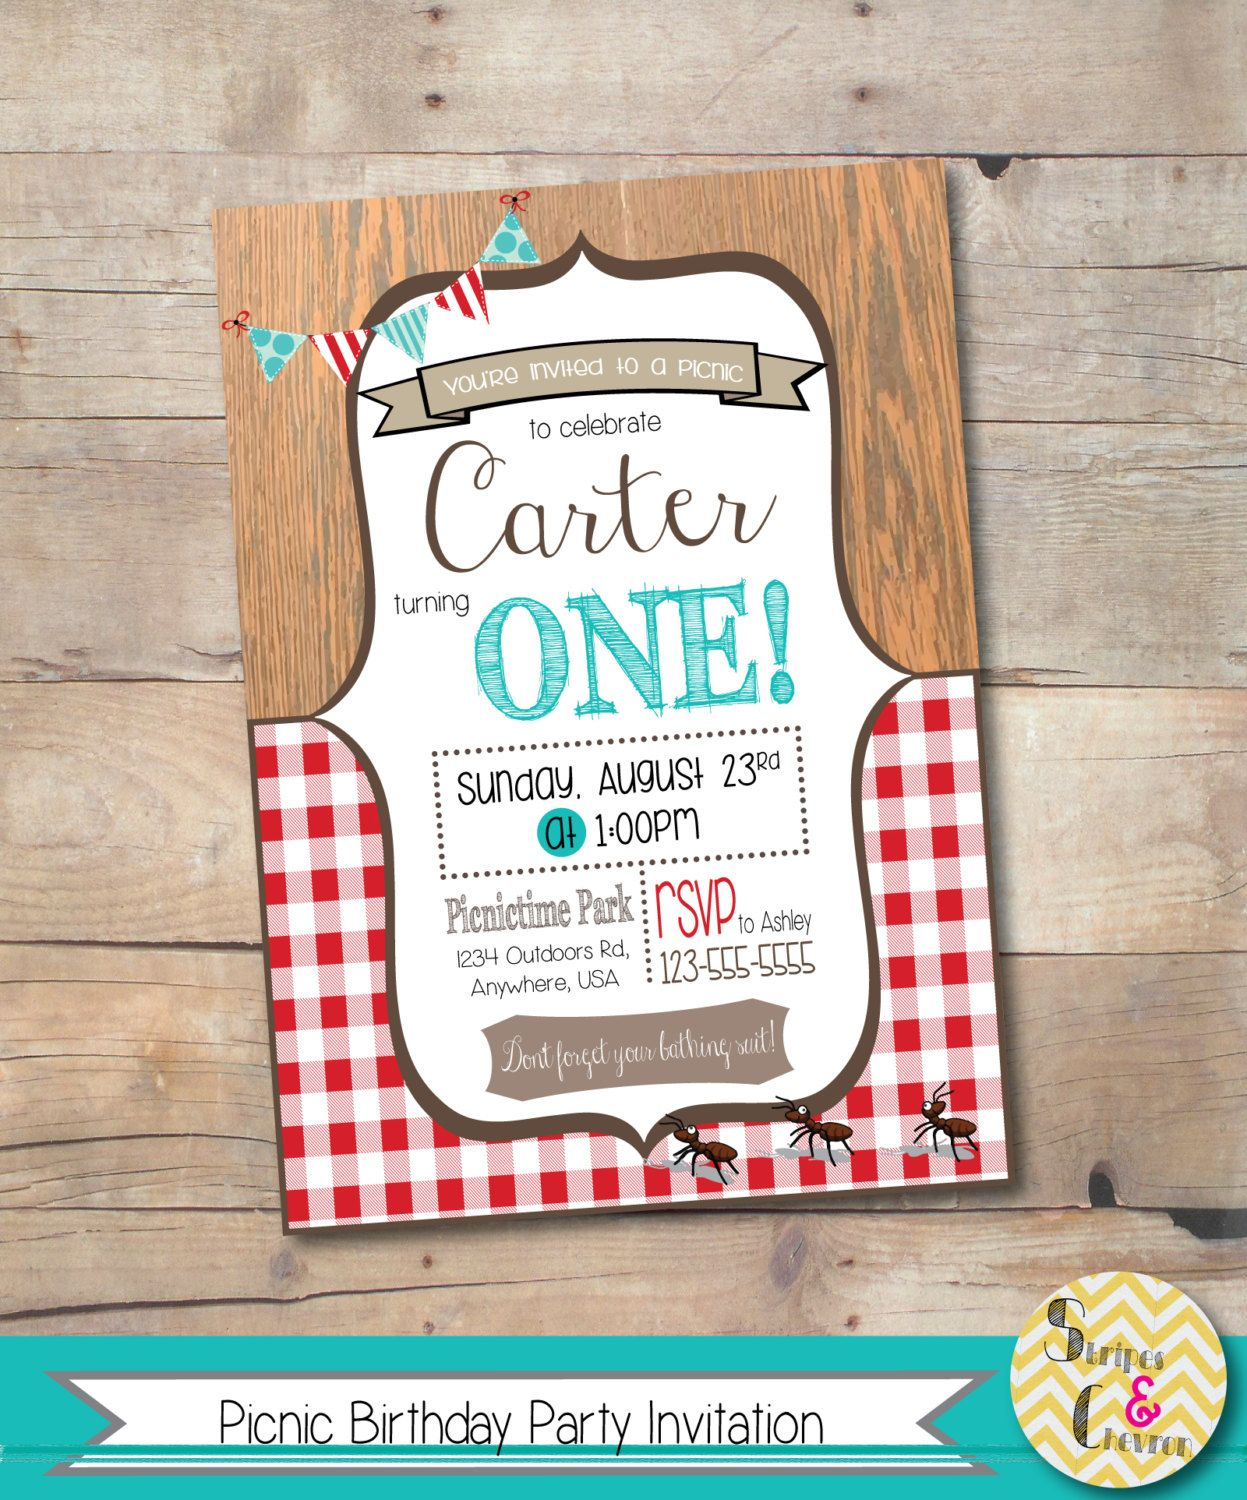 Picnic Party Invitation Picnic Birthday Party Summer | Cards ...